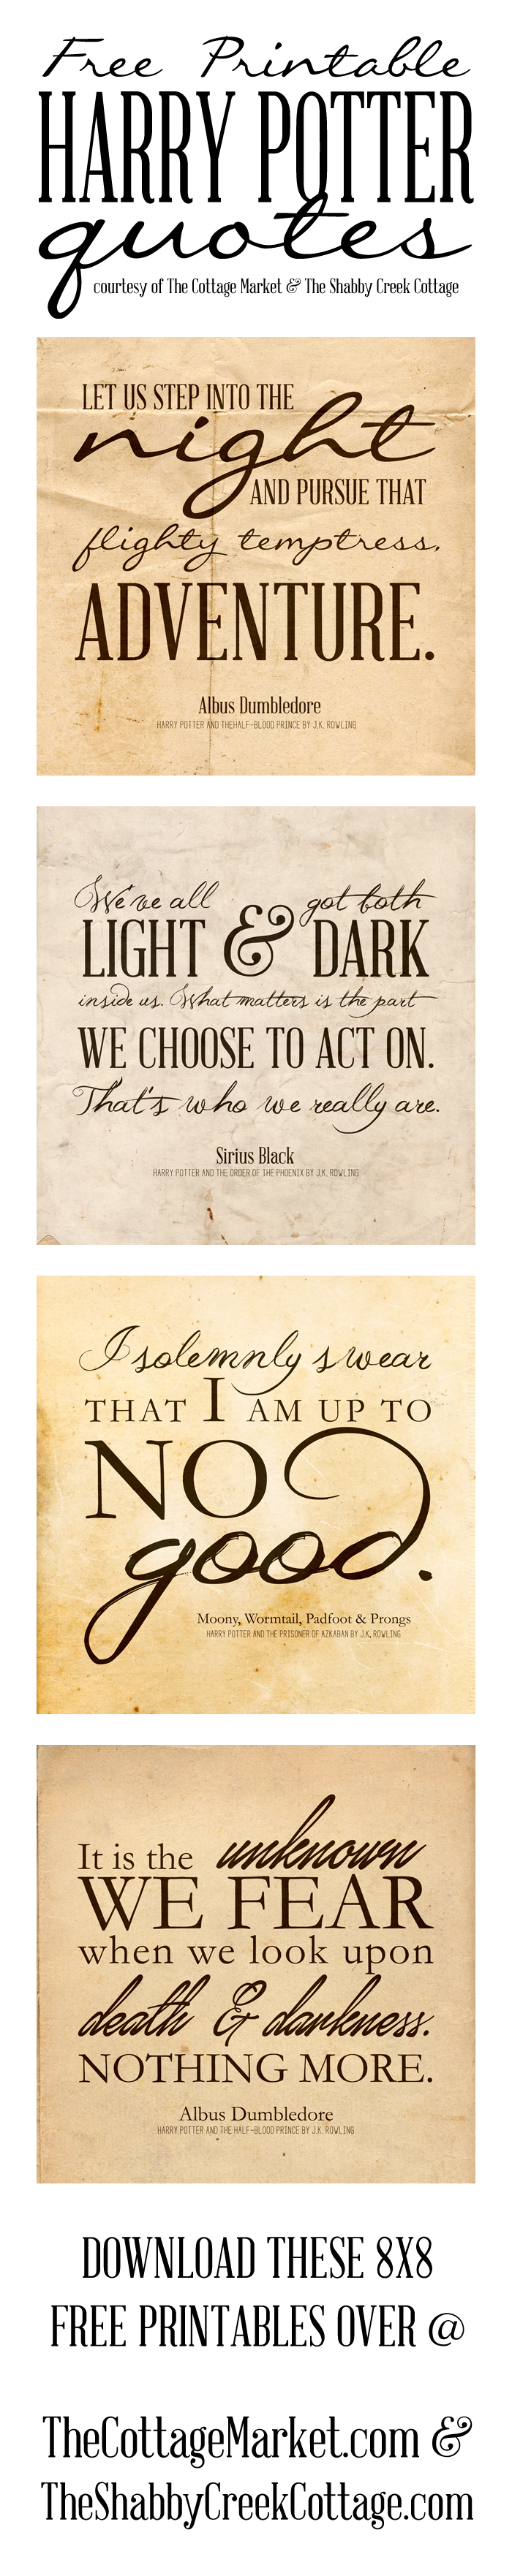 Free Printable Harry Potter Quotes   The Cottage Market - Free Harry Potter Printables